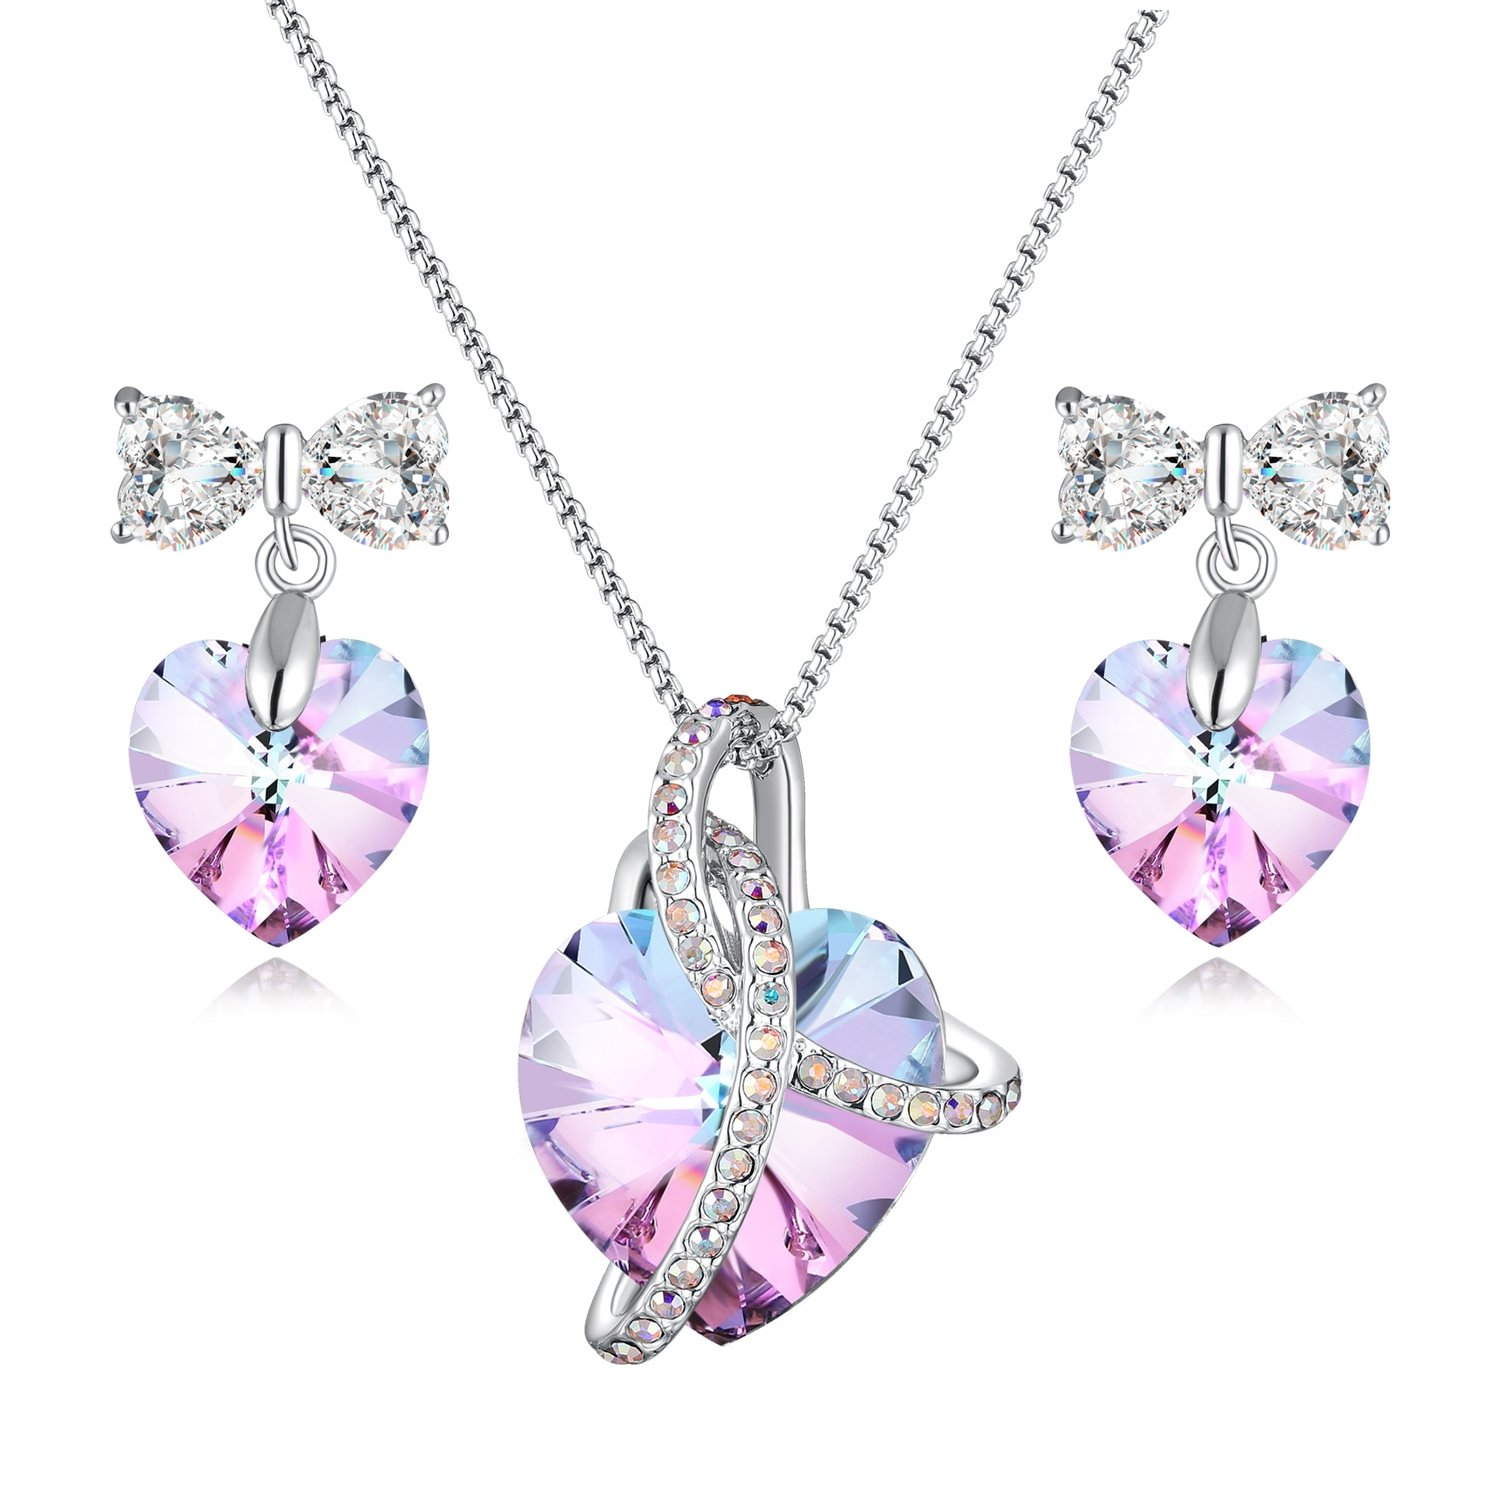 Jewelry Set For Mom Heart Pendant Necklace & Earrings Jewelry Set with Swarovski Crystals 3 Different Purple Crystal Jewelry Set Style